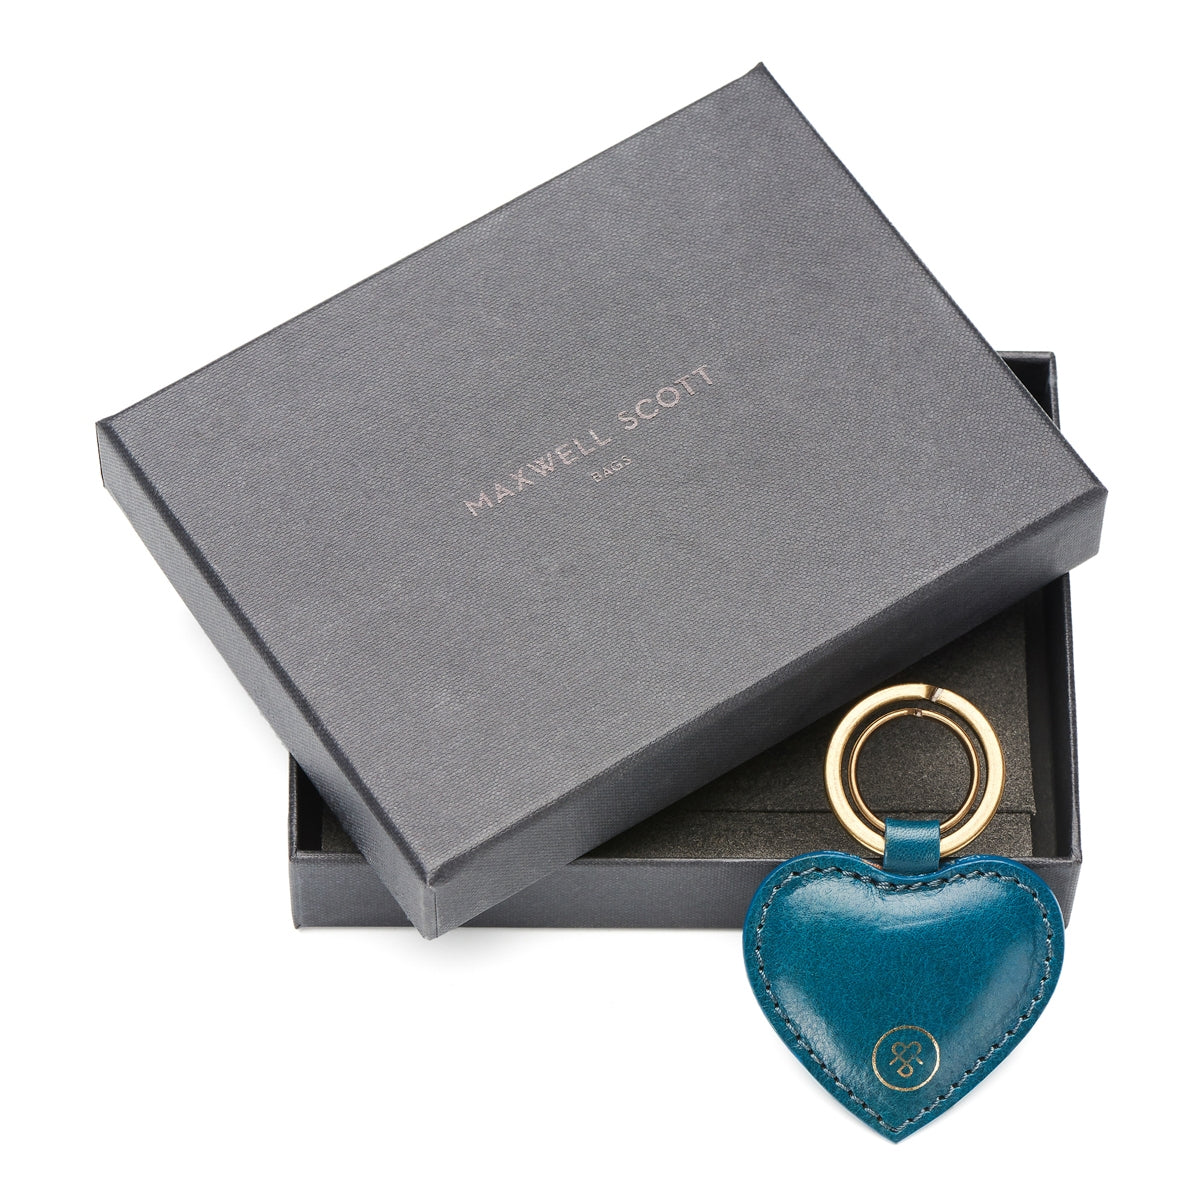 Image 6 of the 'Mimi' Leather Heart Key Ring